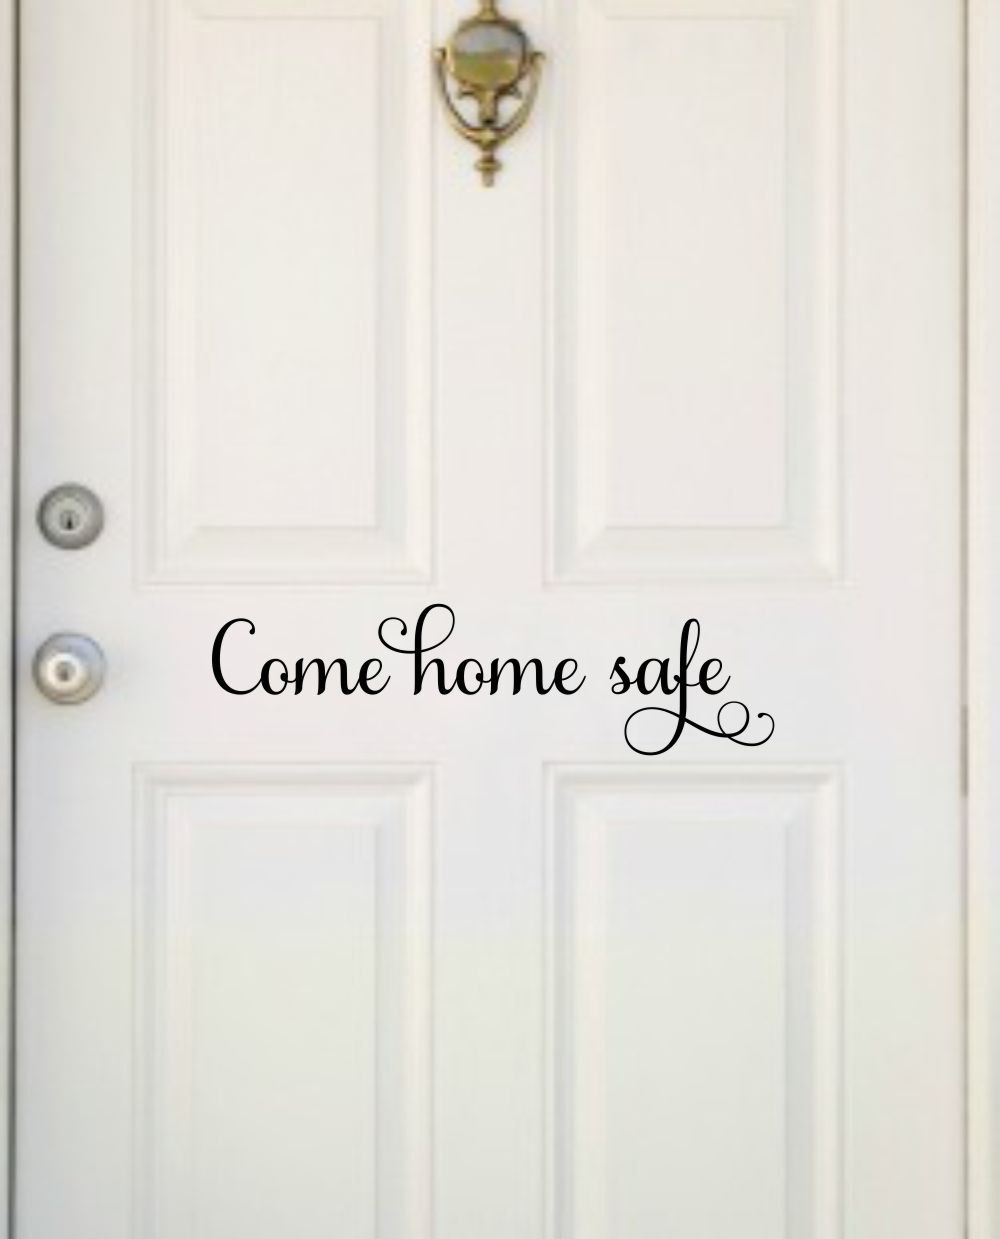 Come Home Safe Decal Police Decal Come Home Safe Vinyl Home Door Decal  Police Officer Decor Military Firefighter Door Decal Come Home Quote By ...